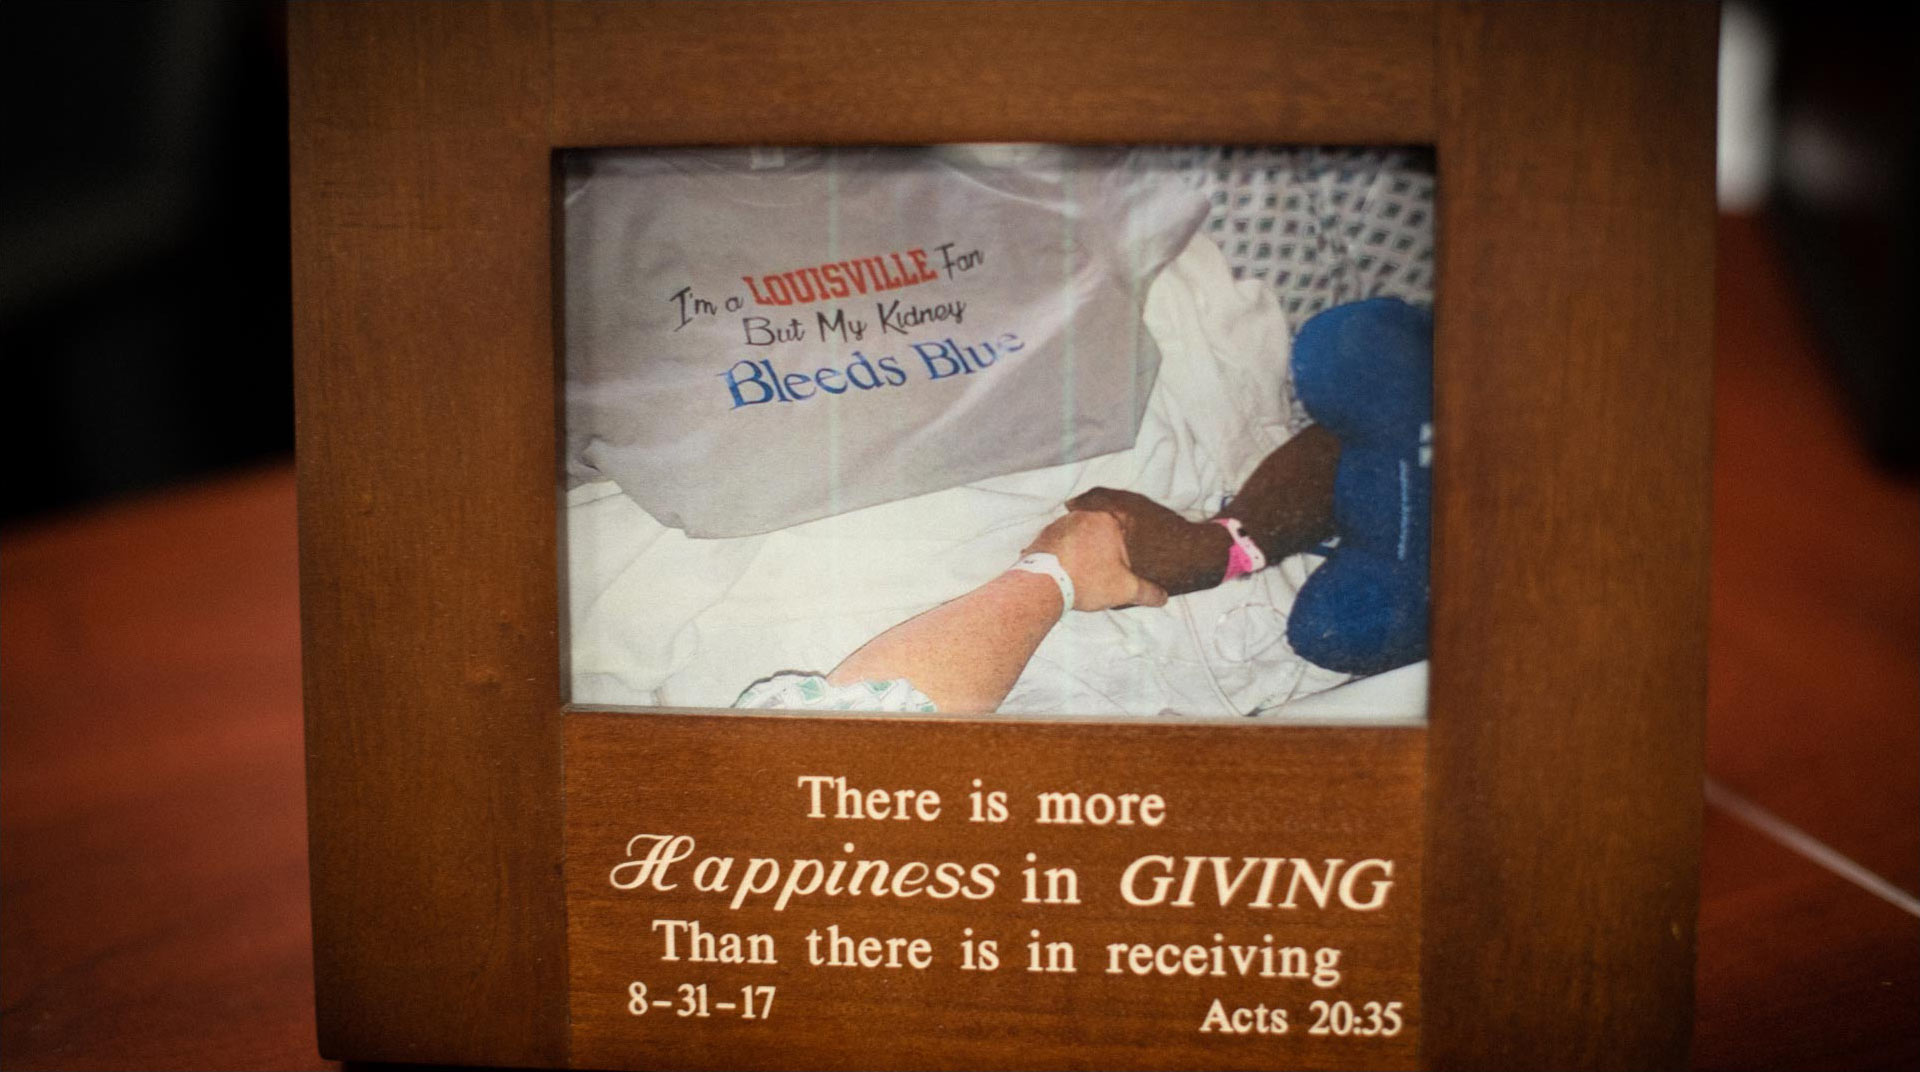 "A photo in a frame, showing Ivan and Marci at the hospital. They are holding hands and wearing hospital gowns. Only their arms are visible. Draped over Ivan is a tee shirt that reads ""I'm a Louisville fan but my kidney bleeds blue."" The photo frame says ""There is more happiness in giving than there is in receiving."""